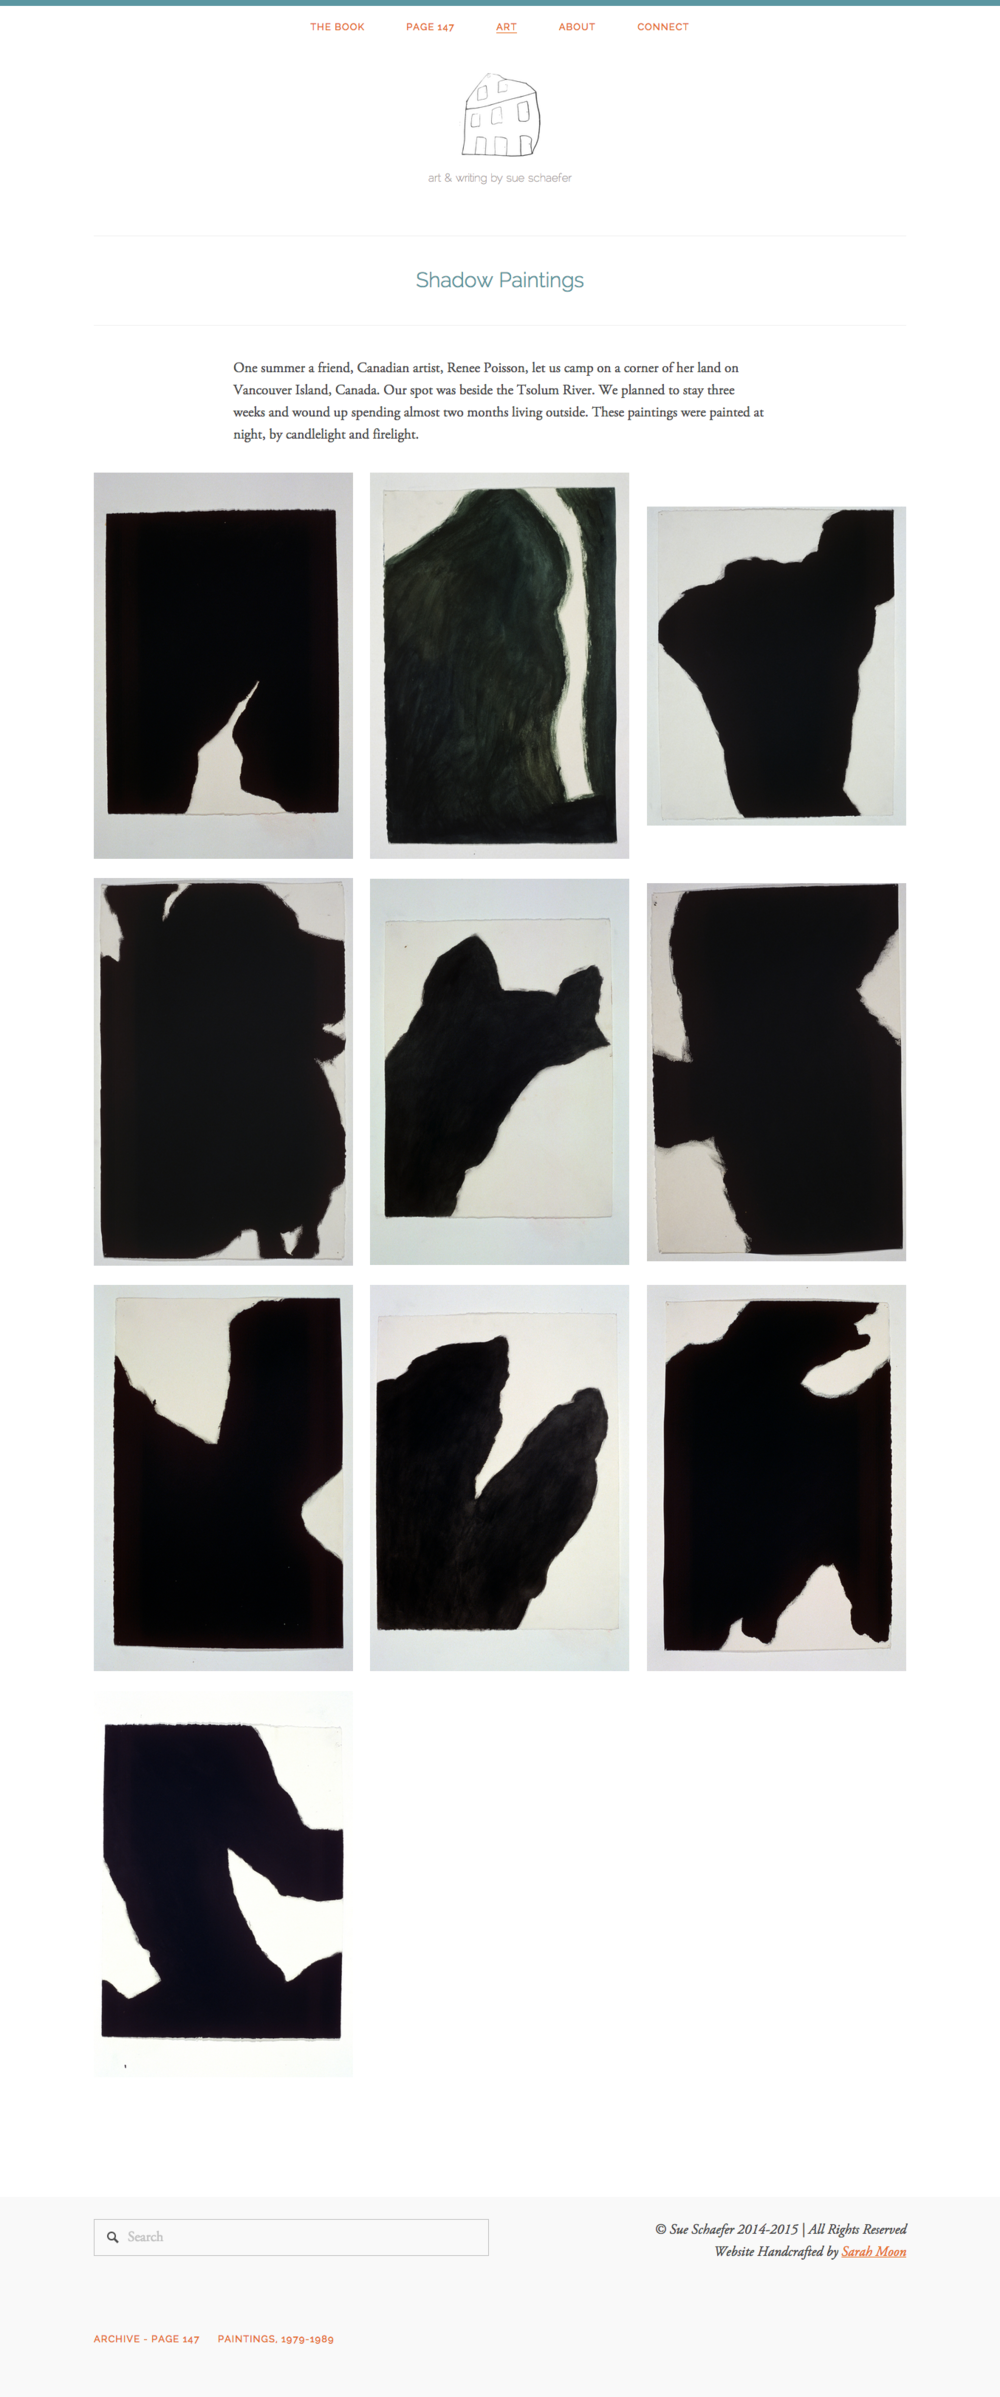 screencapture-www-nowiamheredoingthis-com-shadow-paintings-1429546924393.png